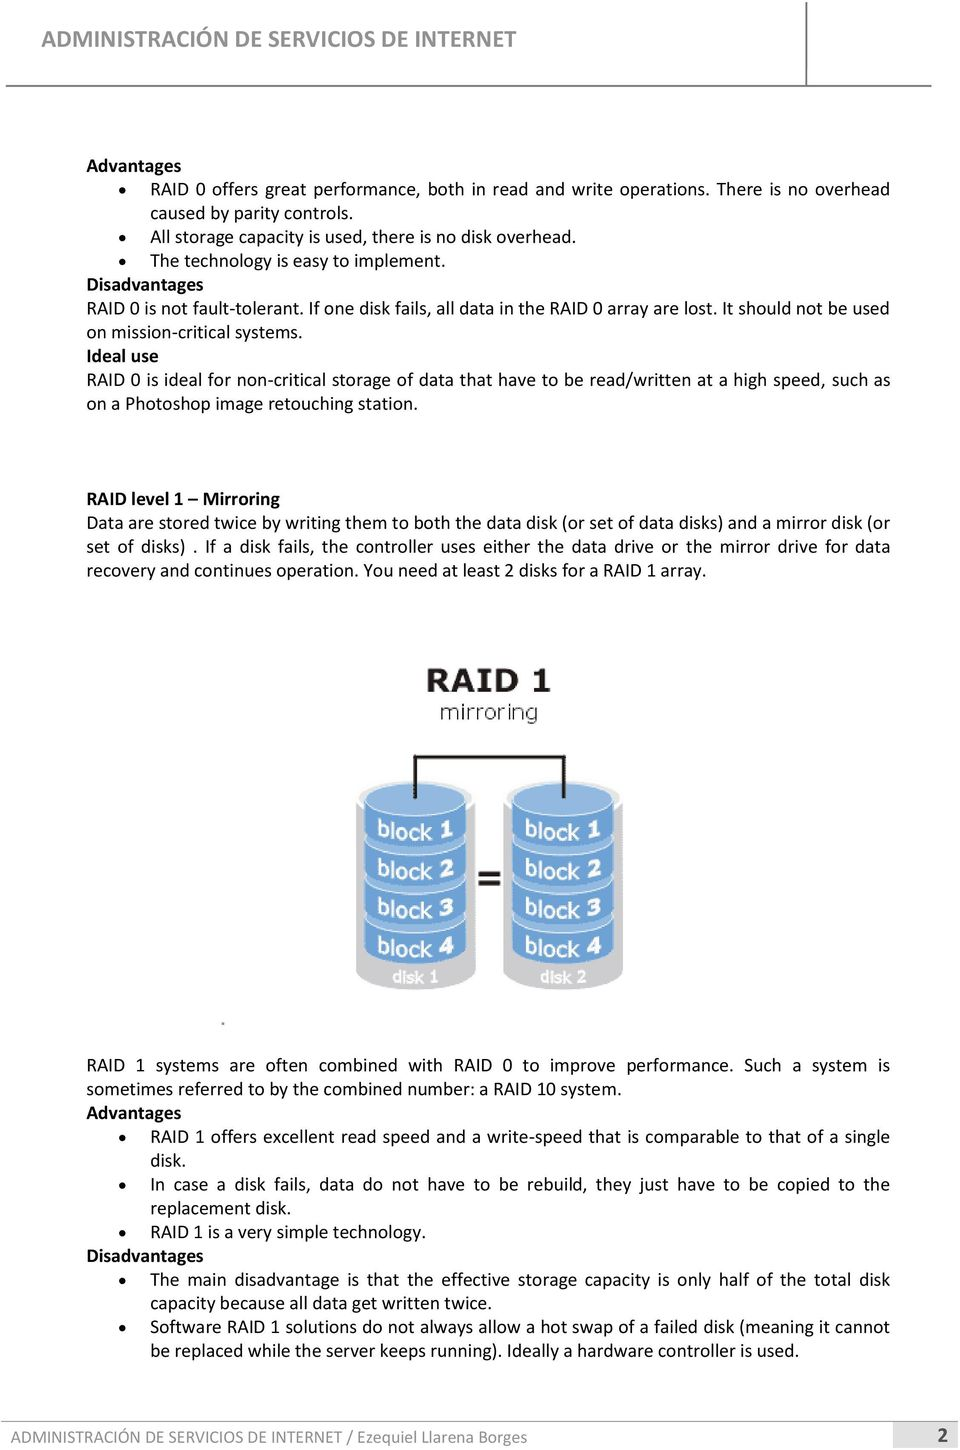 RAID 0 is ideal for non-critical storage of data that have to be read/written at a high speed, such as on a Photoshop image retouching station.